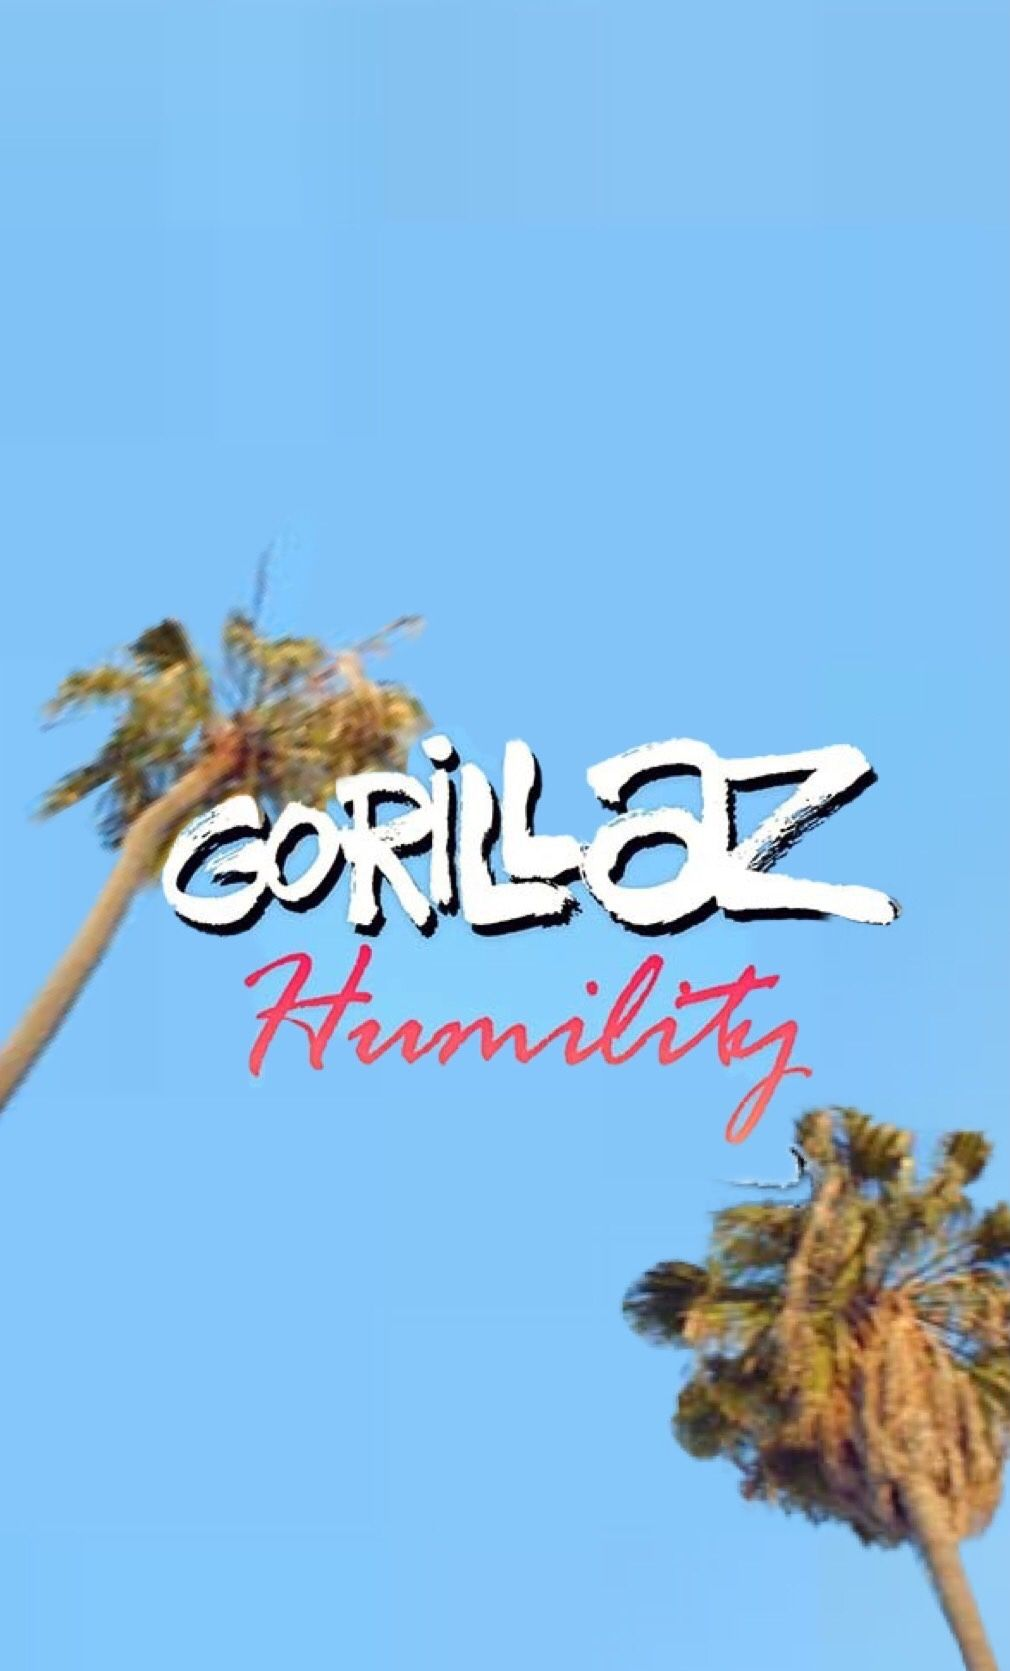 took my time and recreated the gorillaz humility logo to